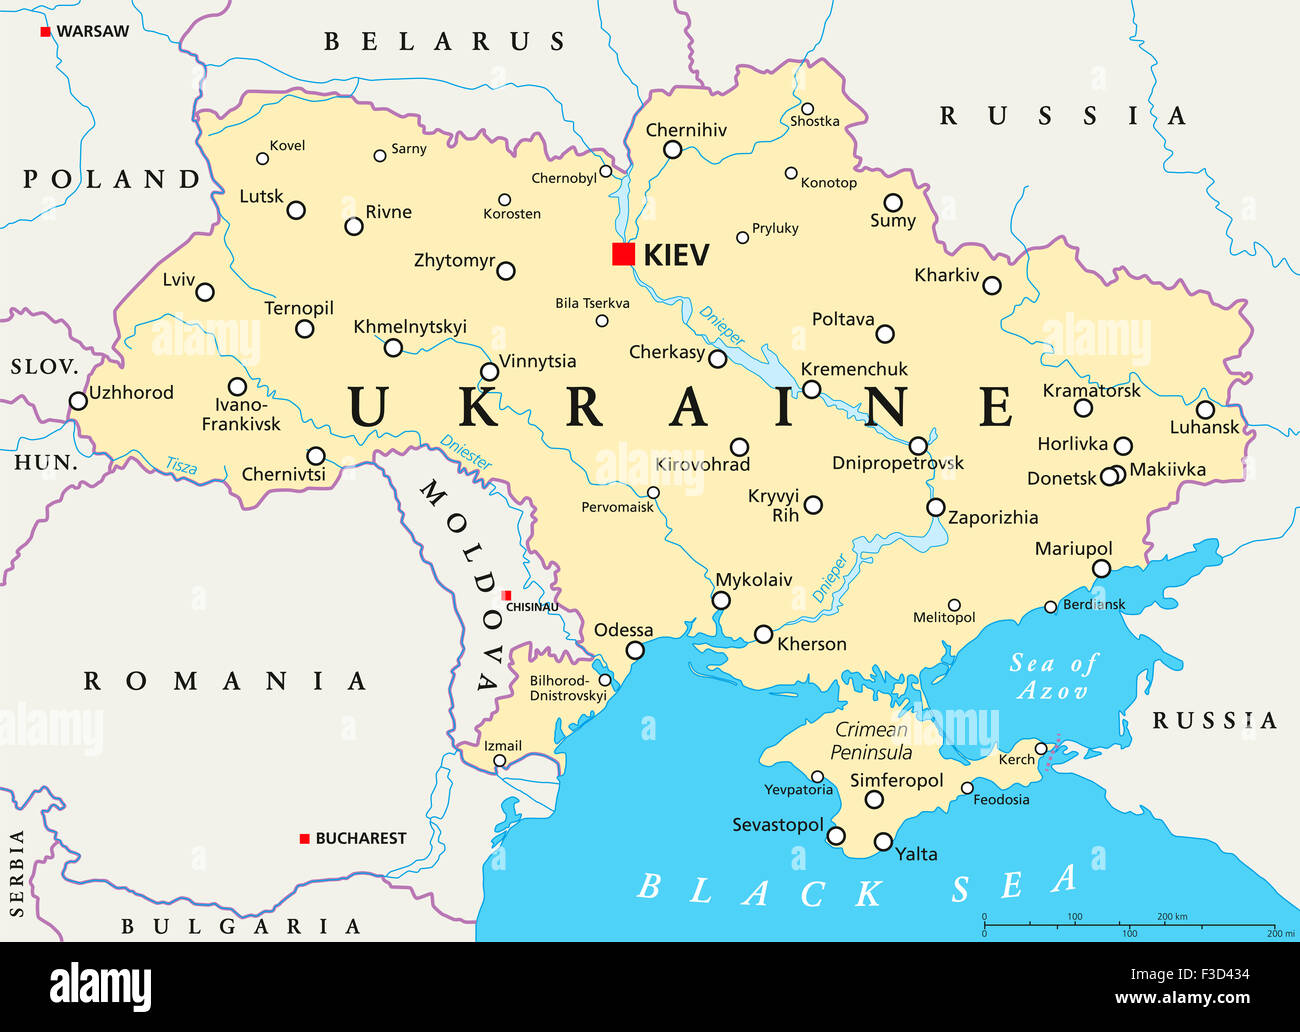 Kiev Ukraine Map Ukraine political map with capital Kiev, national borders